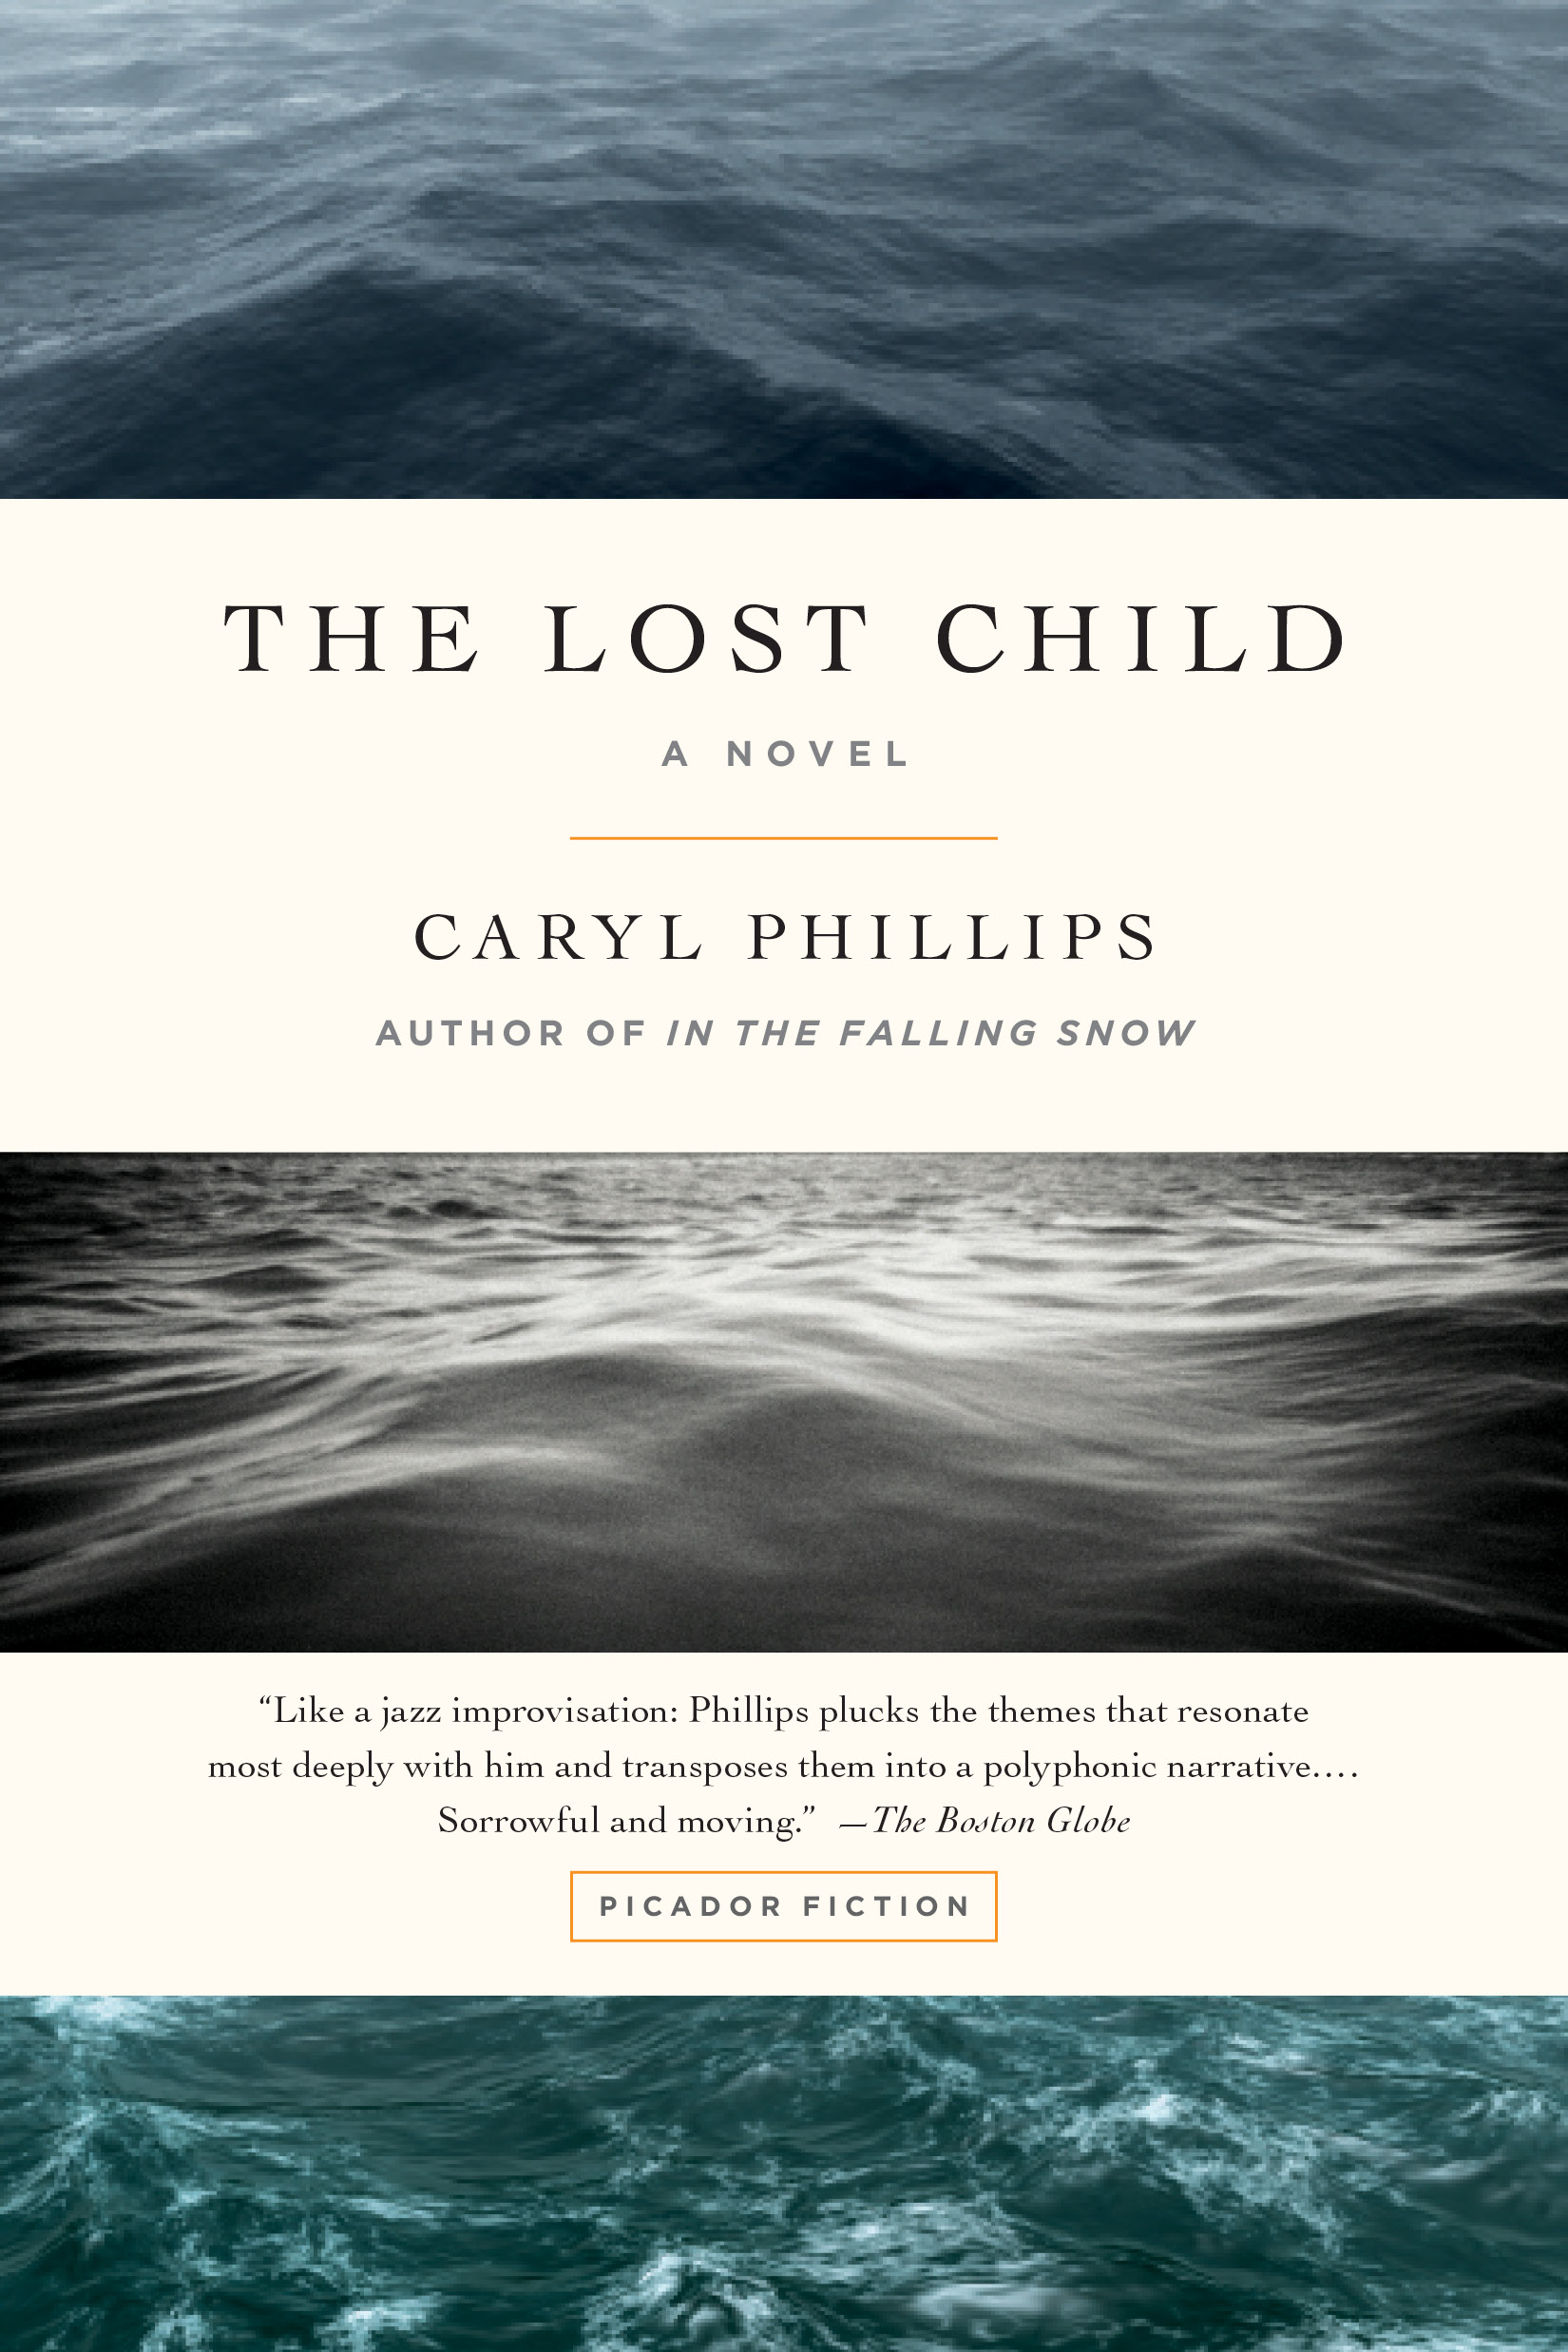 A new world order caryl phillips essay